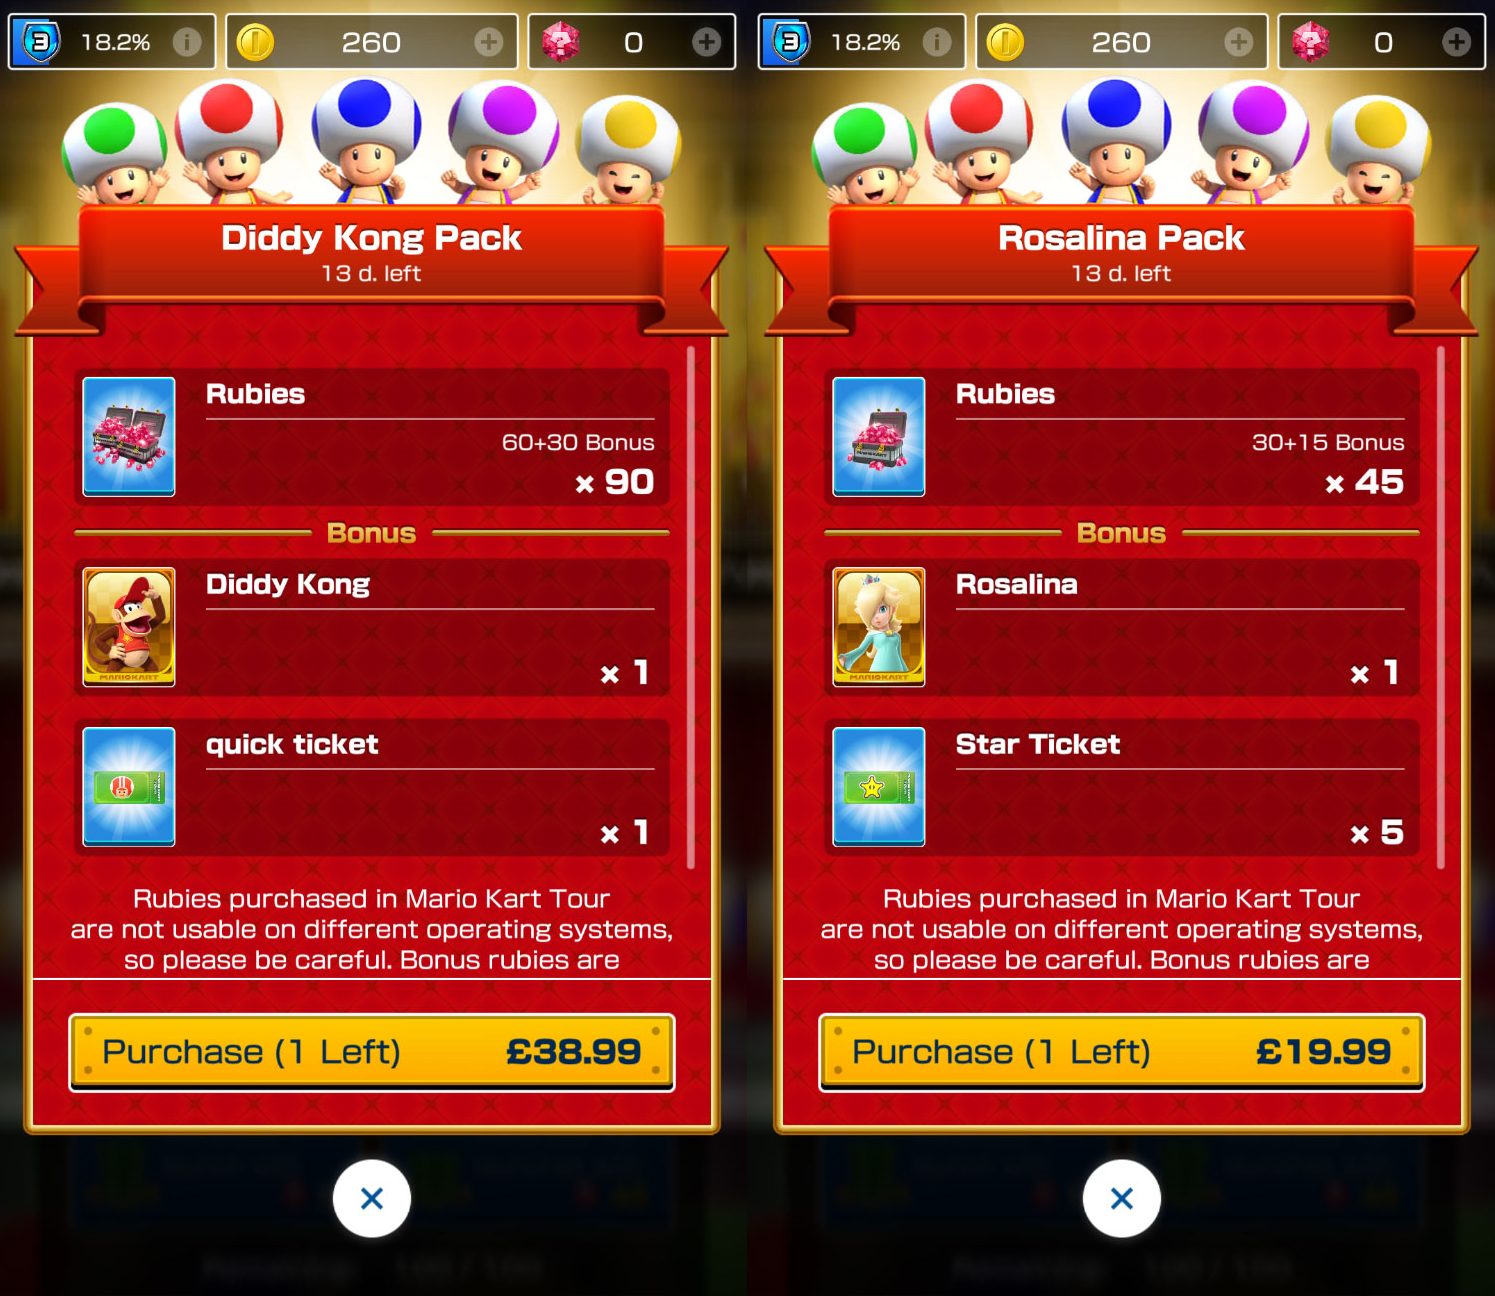 Mario Kart Tour's Rosalina and Diddy Kong packs are pricey endeavors